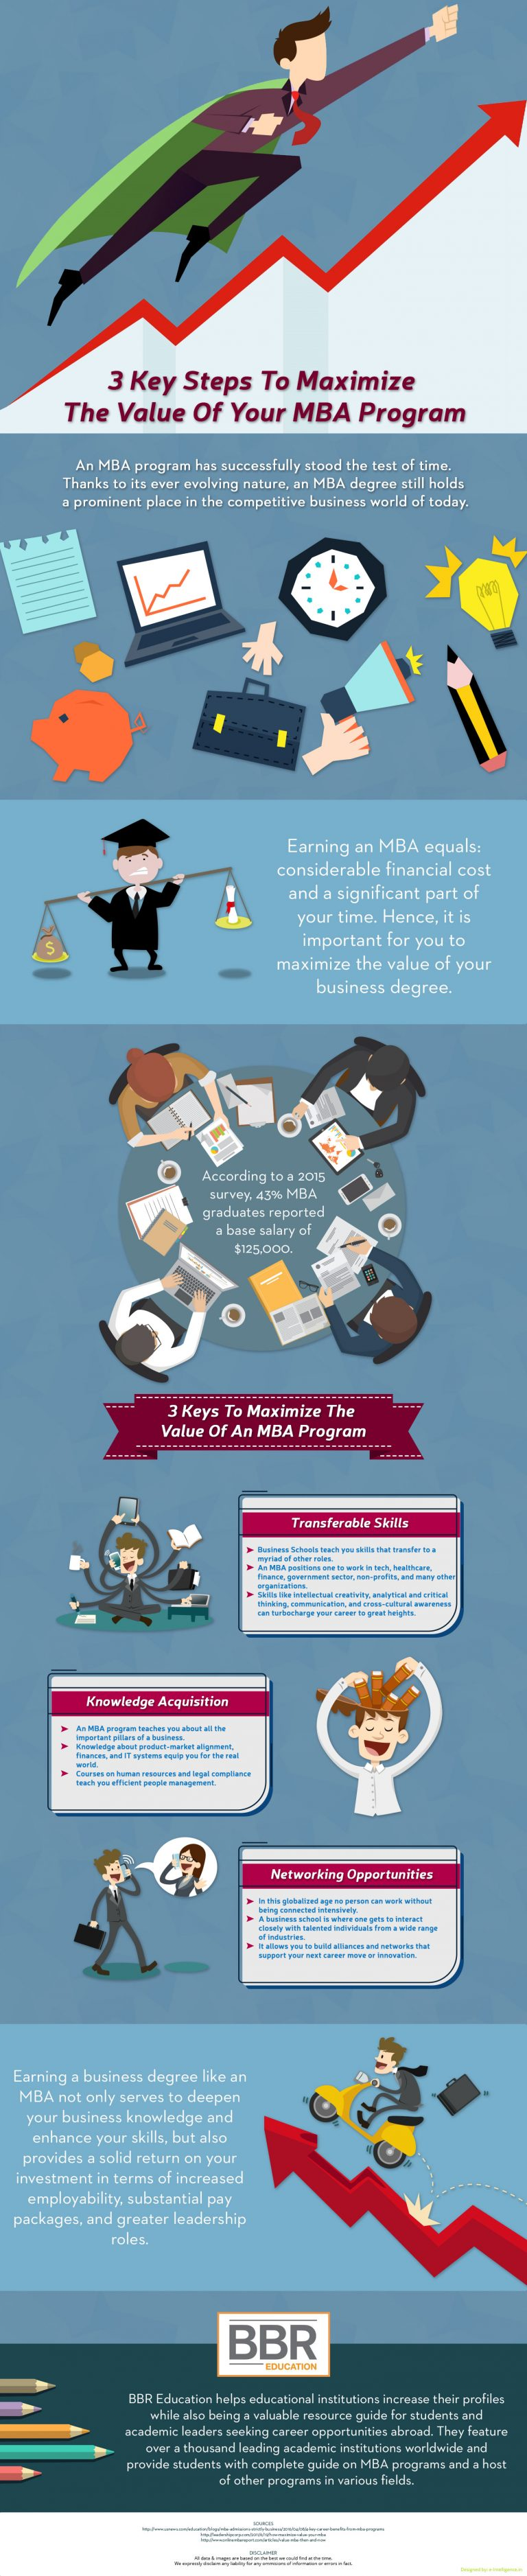 3-Key-Steps-To-Maximize-The-Value-Of-Your-MBA-Program-infographic-plaza